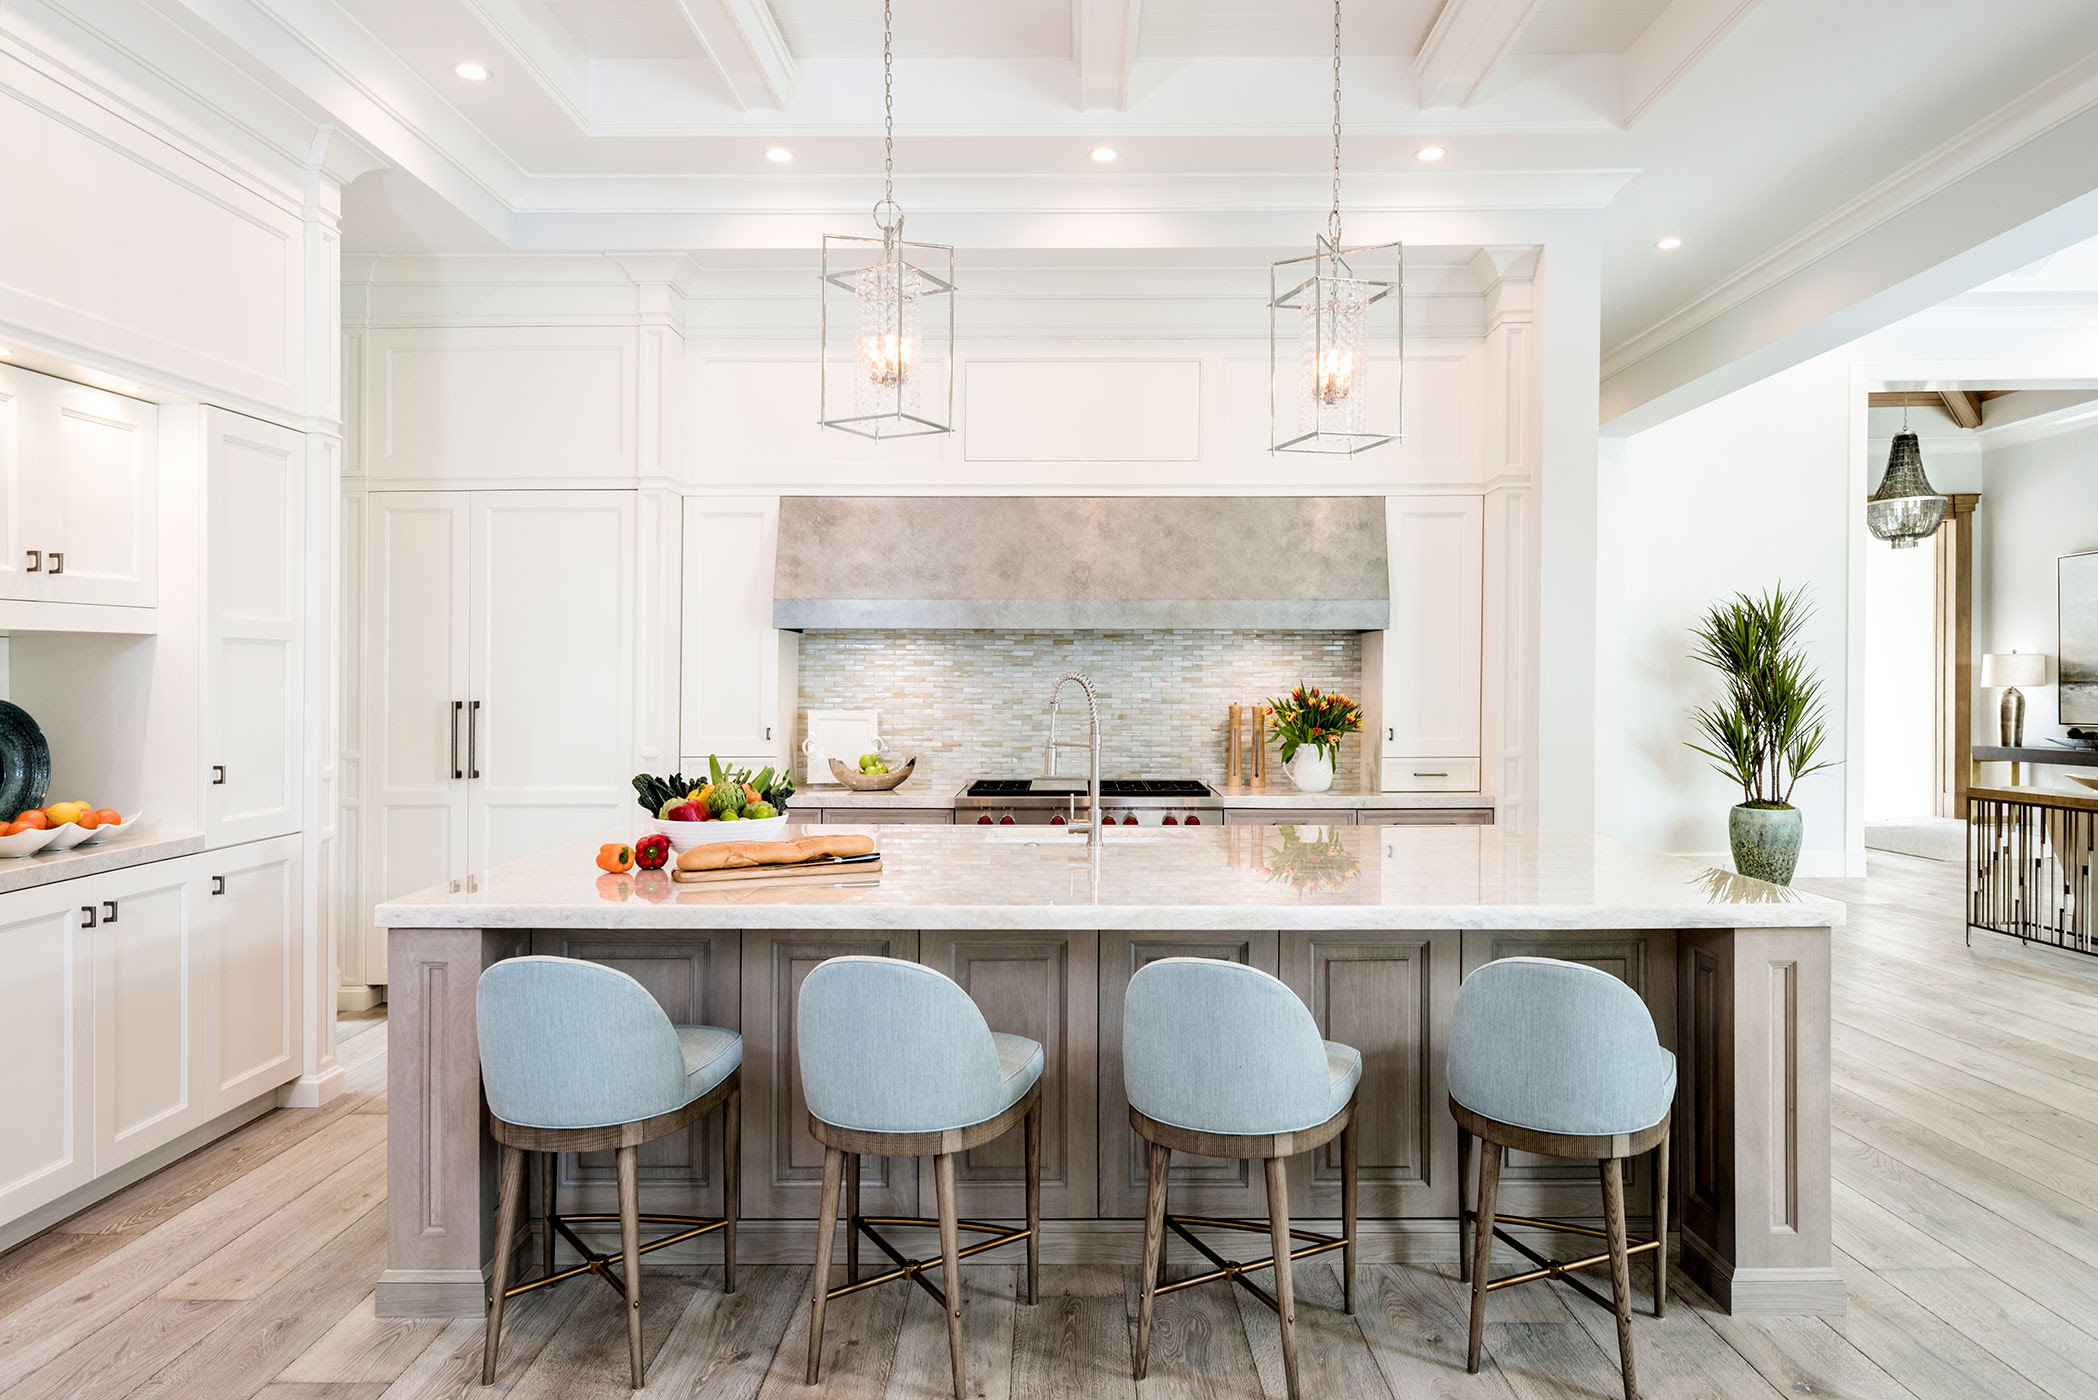 Calusa Bay Design Florida Design Magazine Coastal Chic Inside And Out